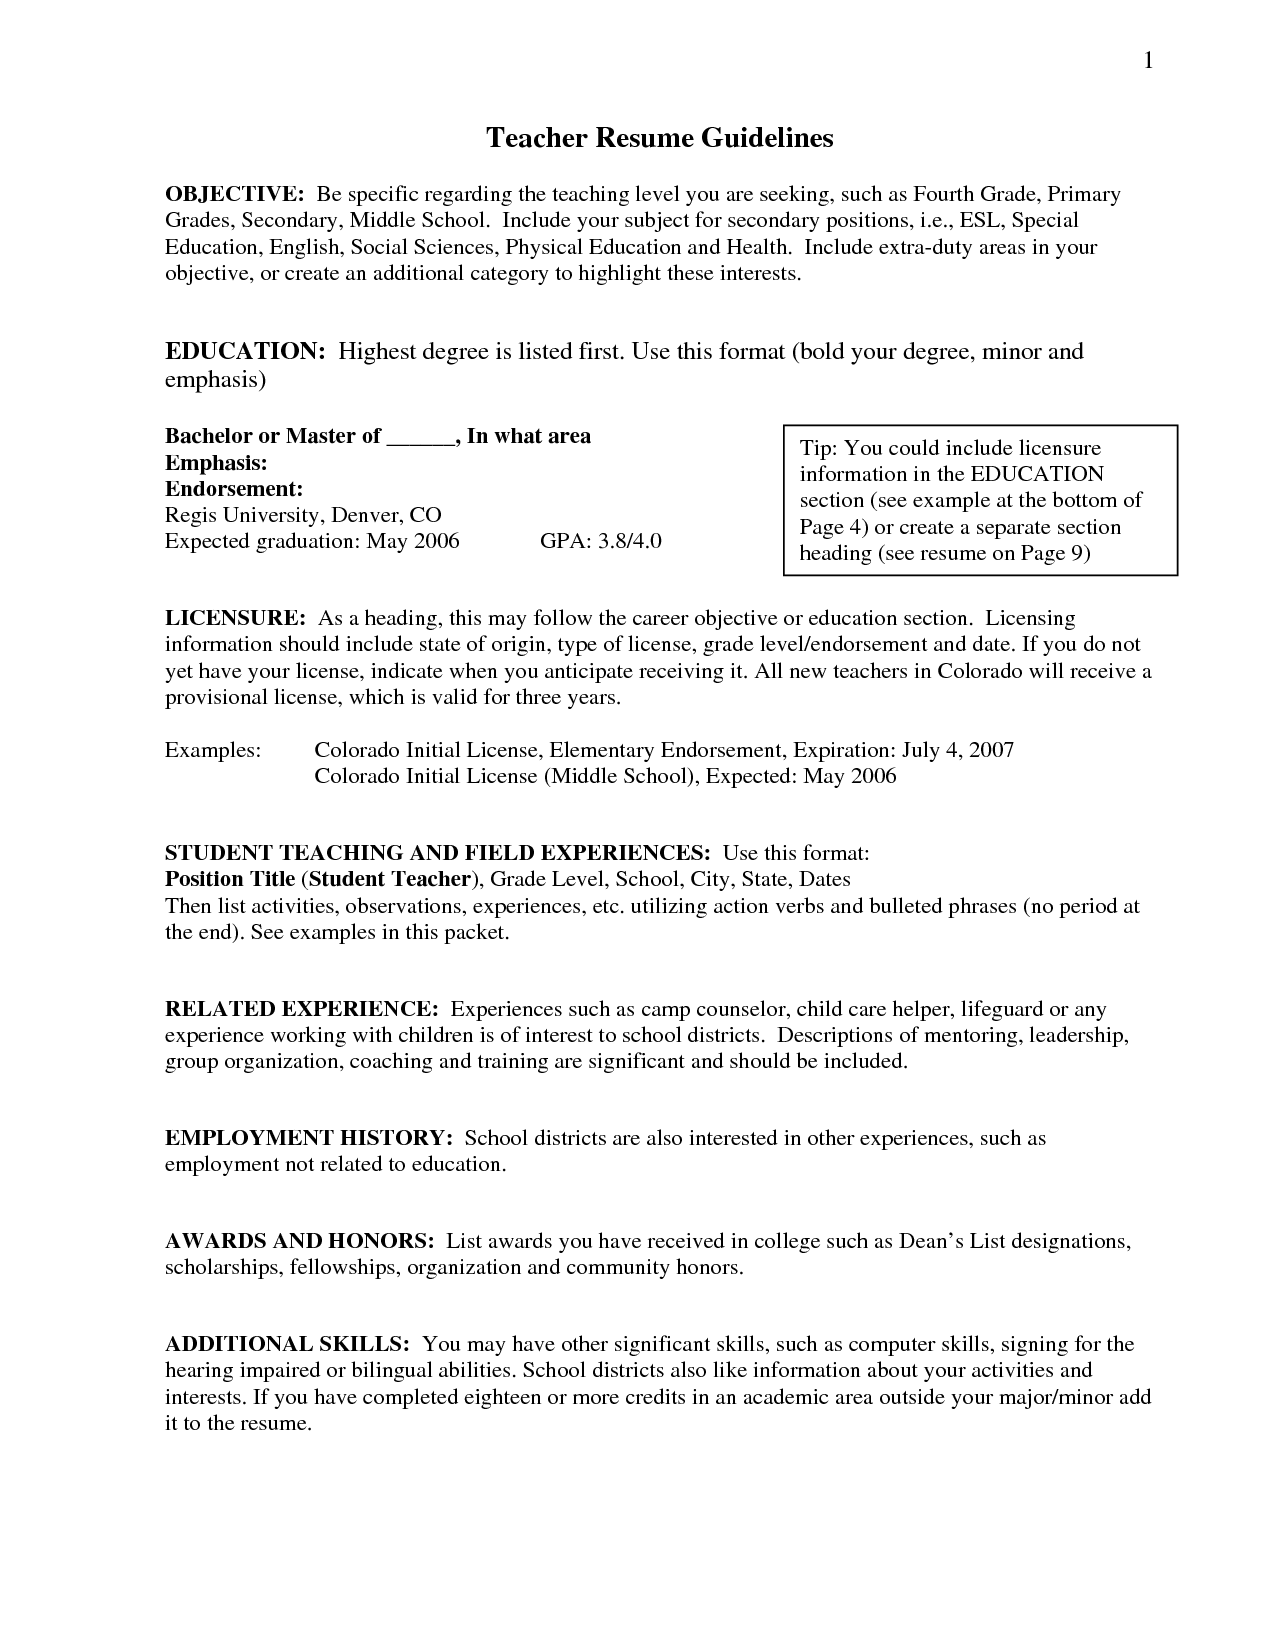 pin by kayla ford on they call me ms. ford | resume, sample resume